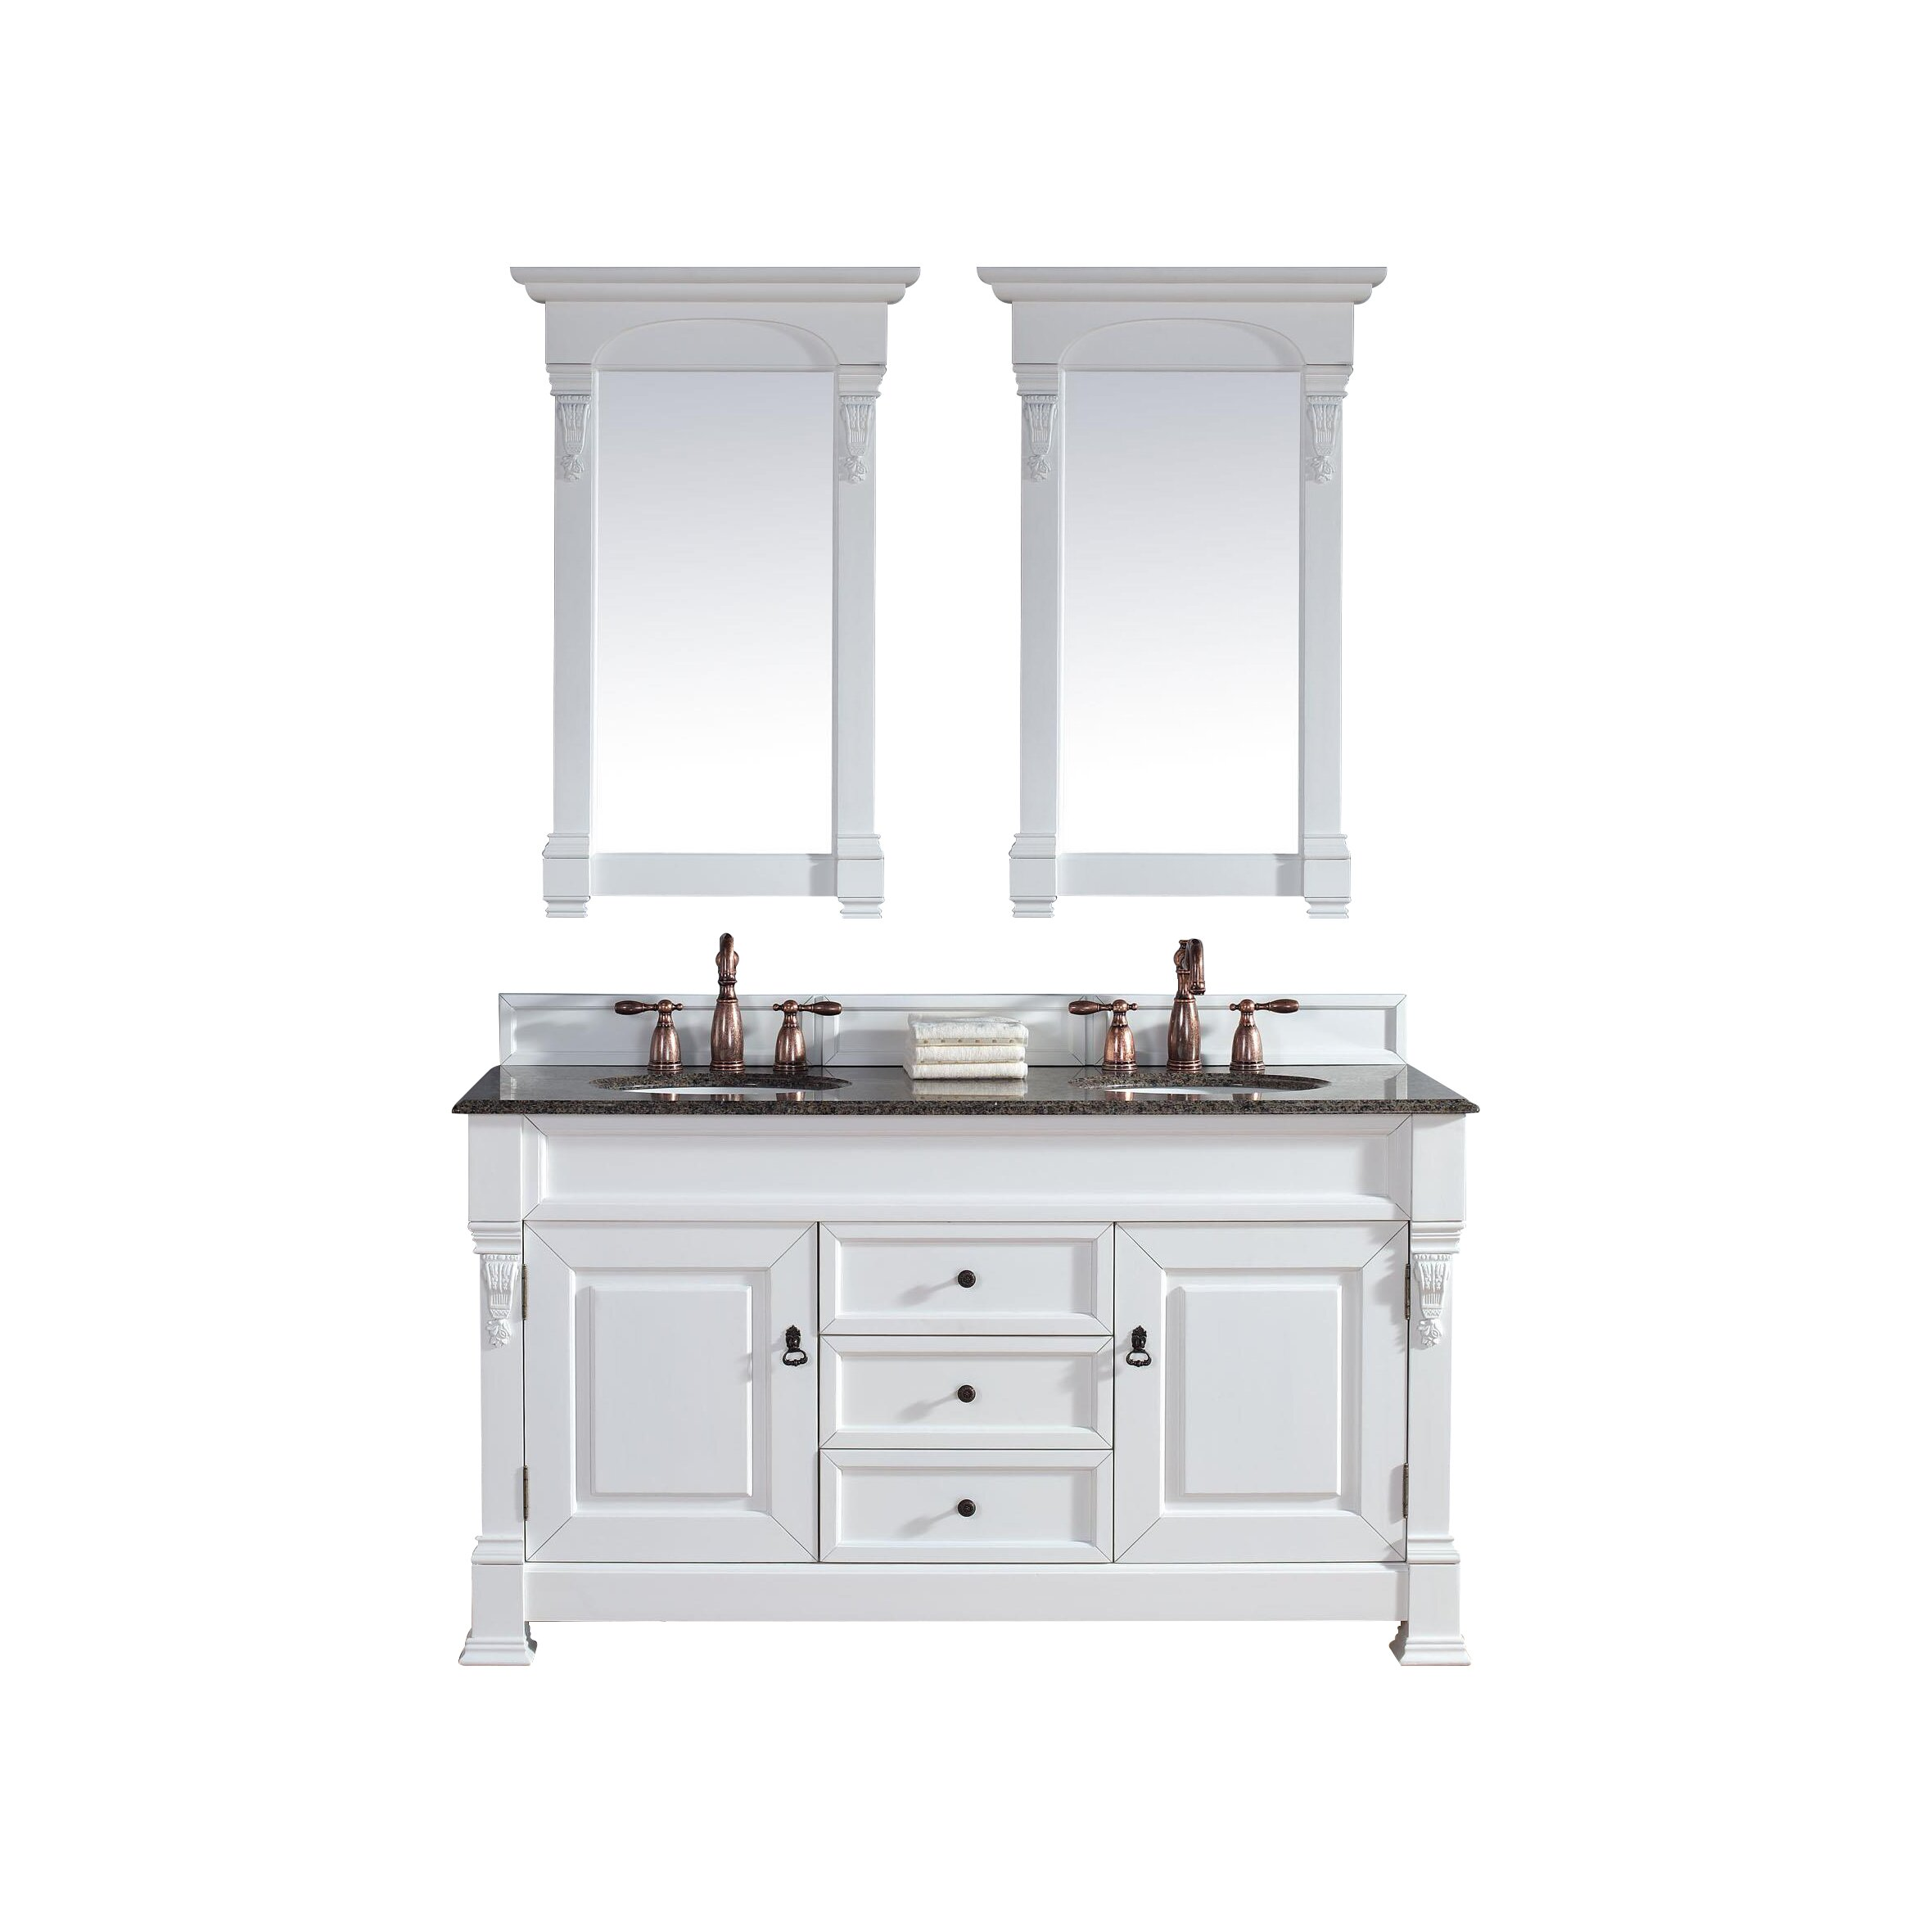 James Martin Furniture Brookfield 60 Double Cottage White Bathroom Vanity Set With Drawers